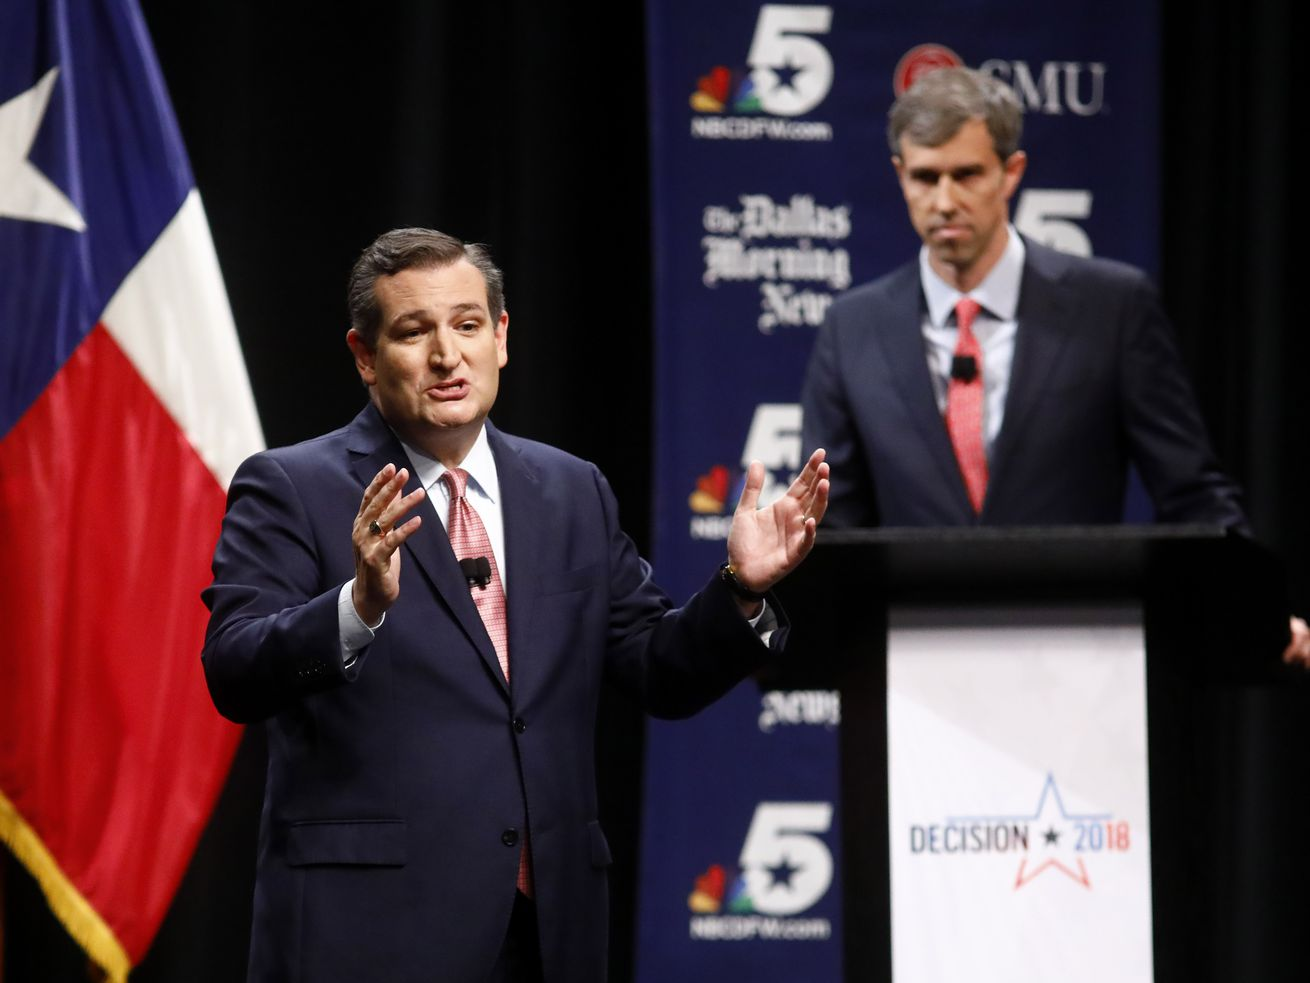 Sen. Ted Cruz makes his final remarks as Rep. Beto O'Rourke looks on during a debate in Dallas, Texas in September 2018.